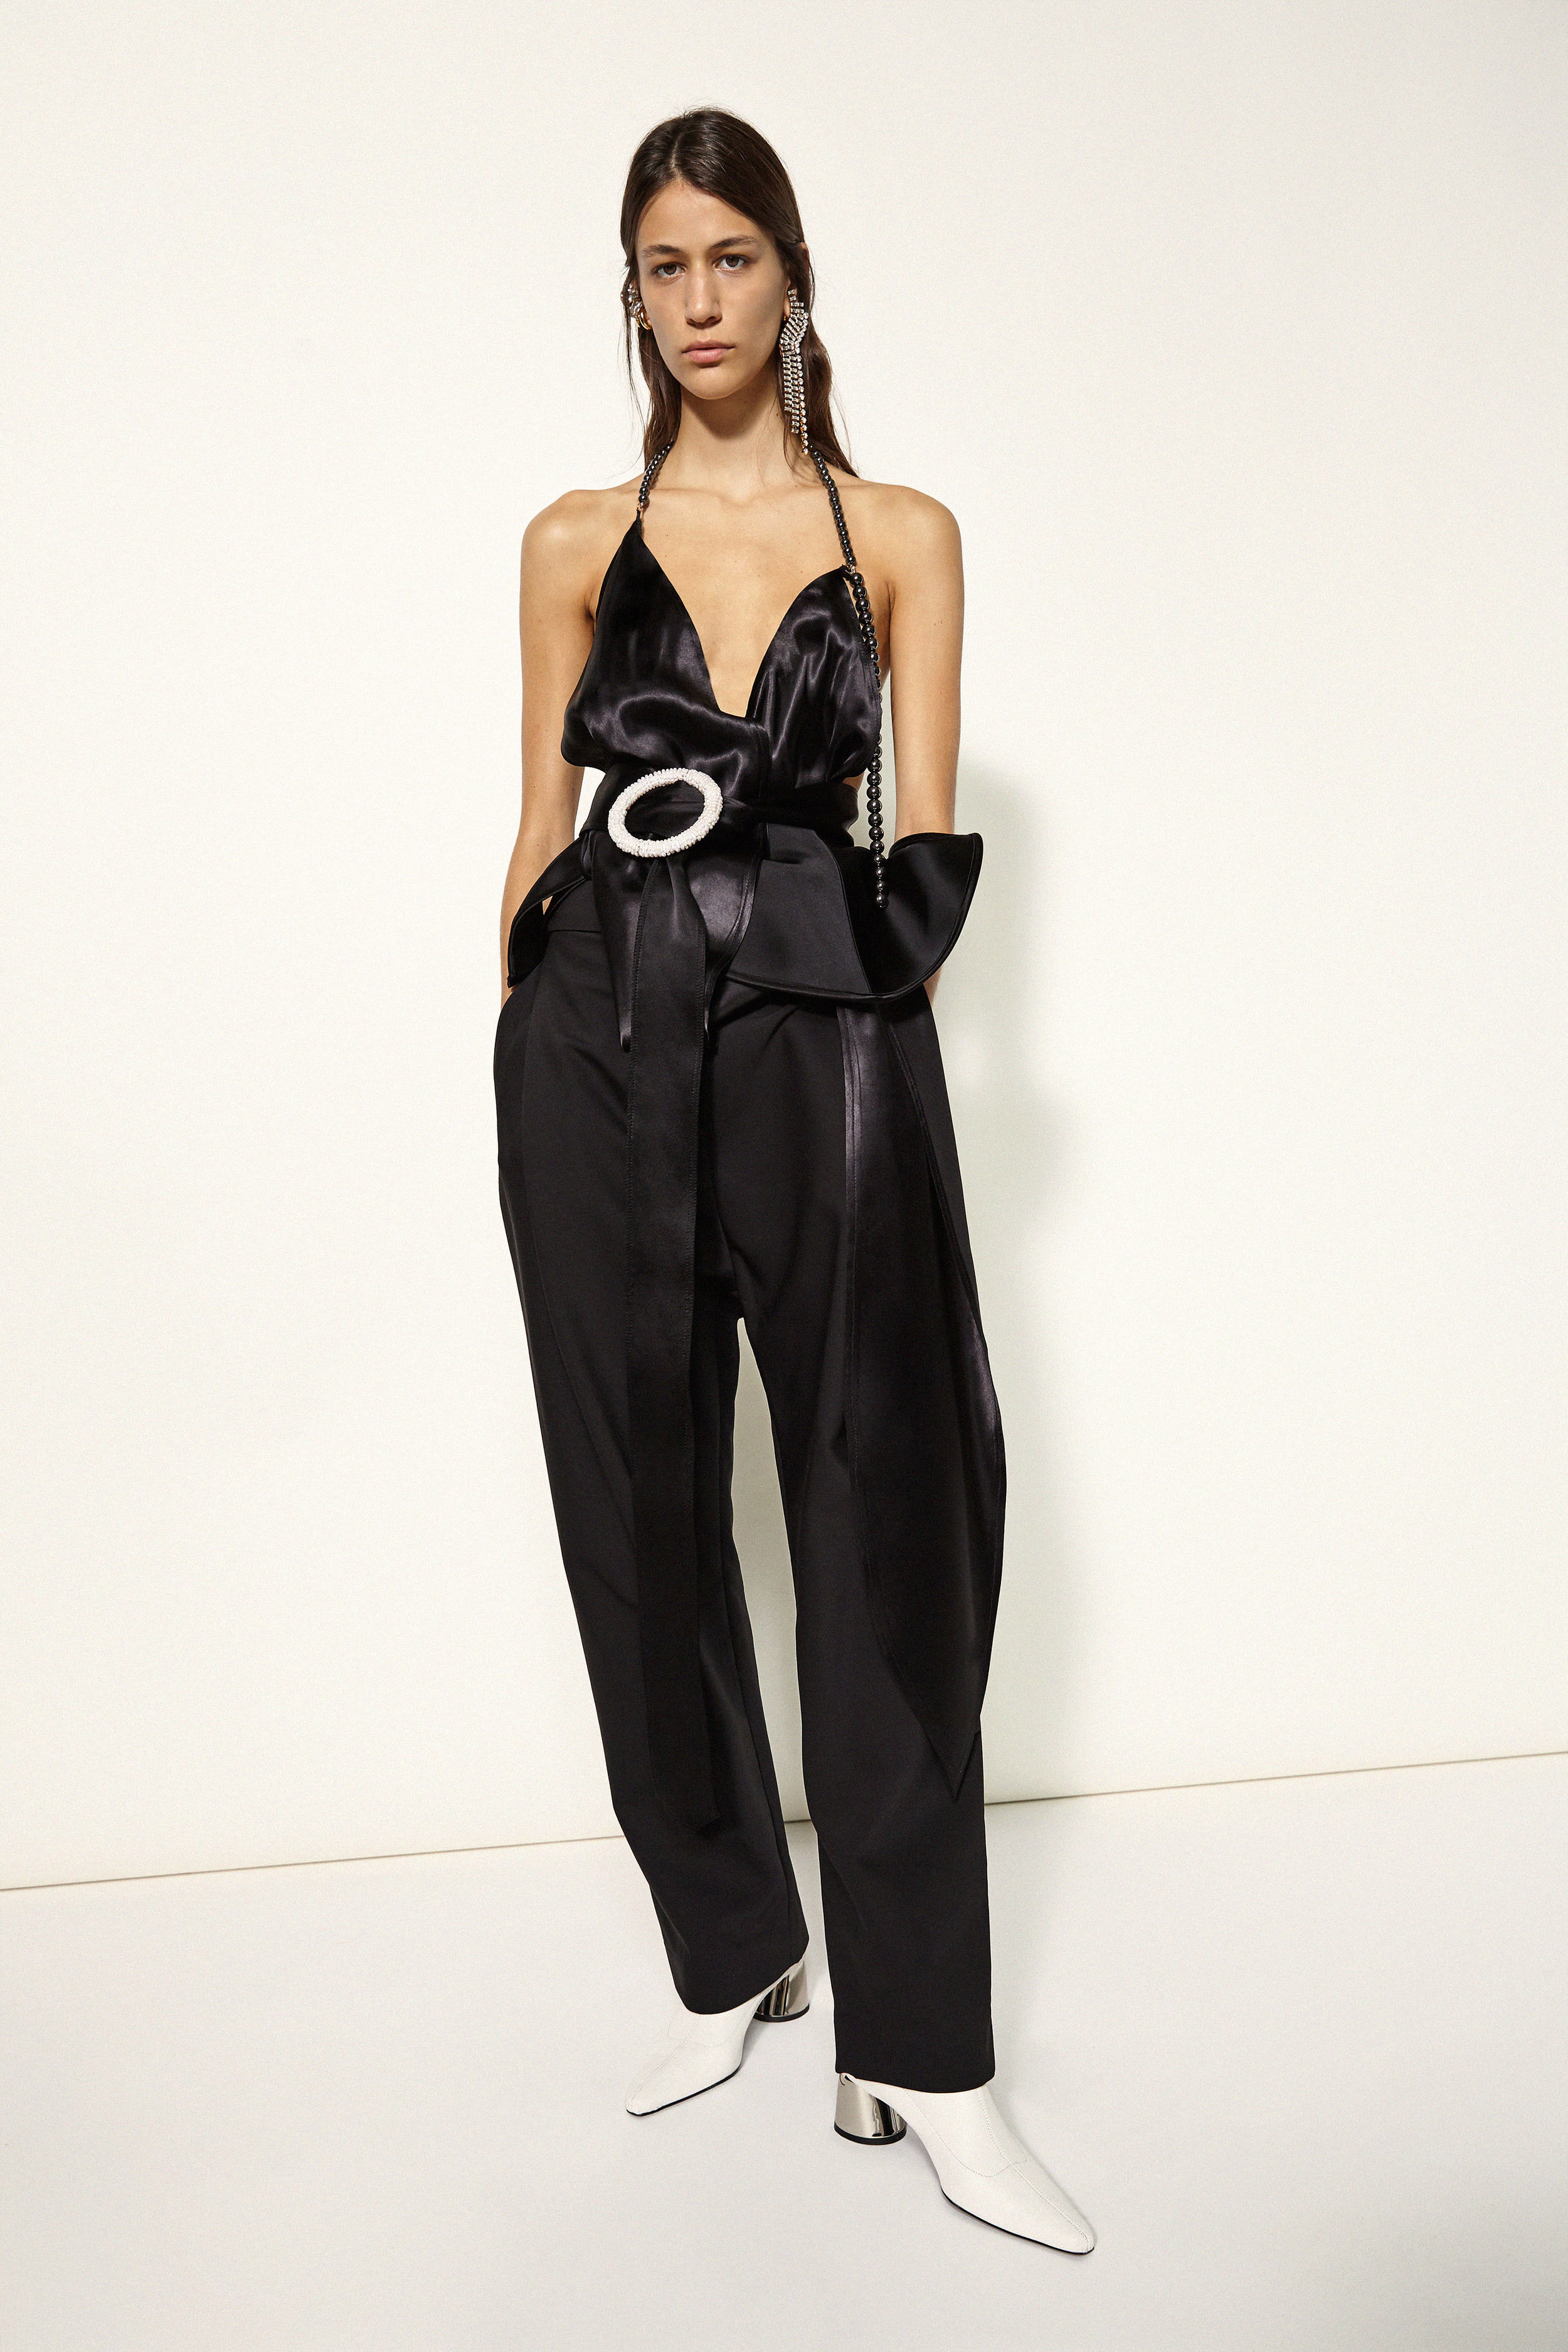 ELLERY_FALL19_PHOTOGRAPHER_KYMELLERY_LOOK29.jpg